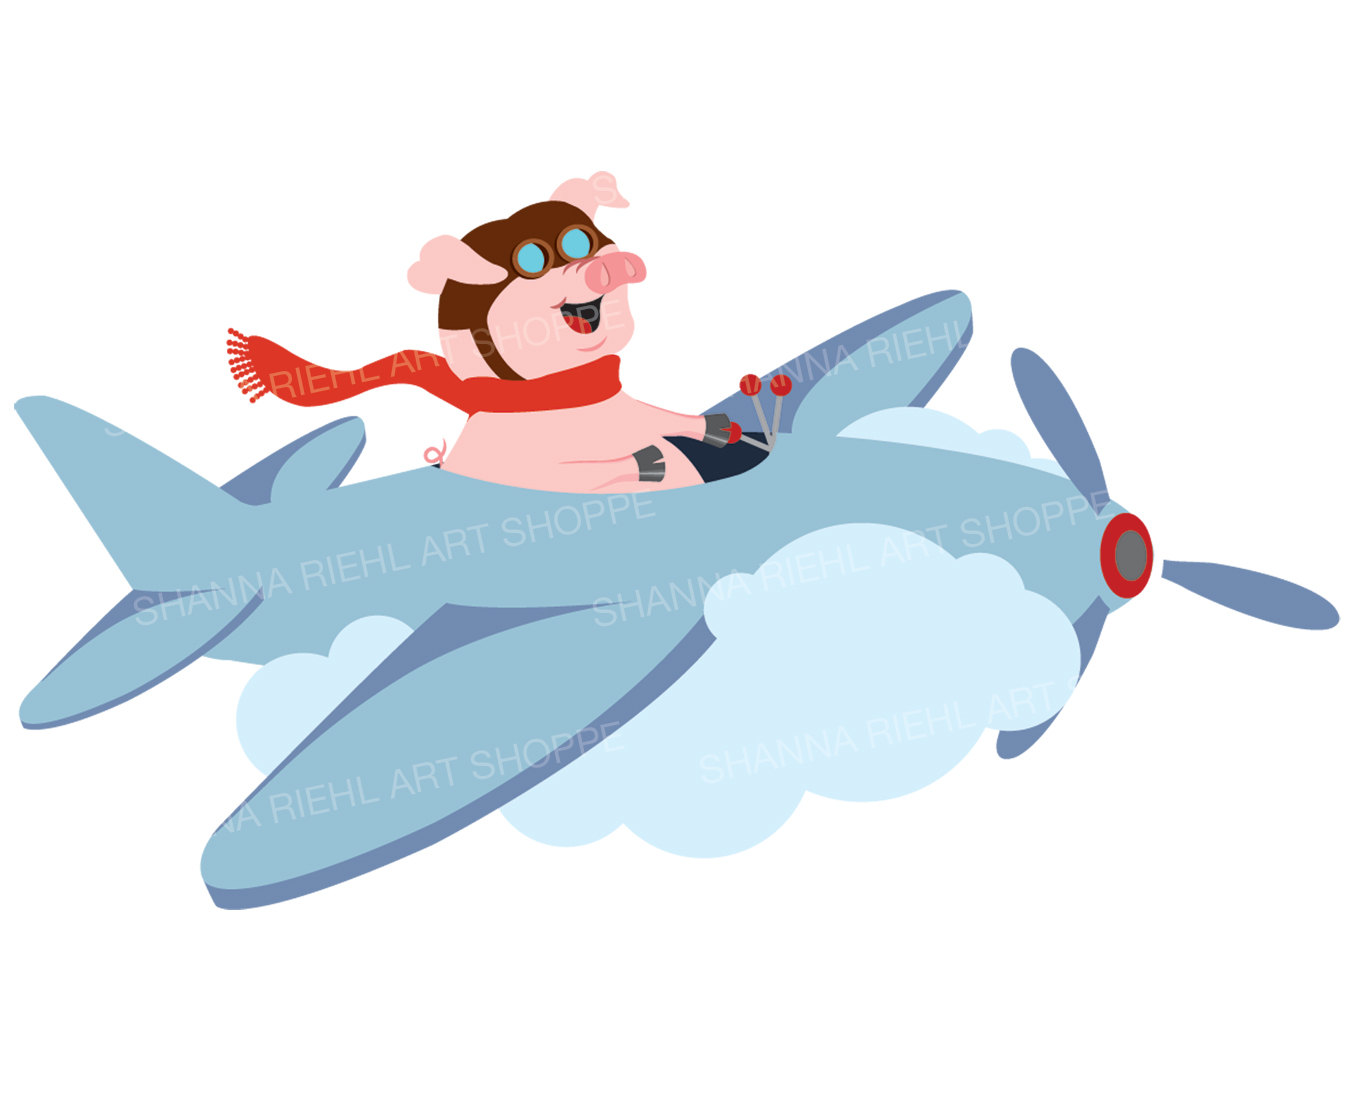 1350x1100 When Pigs Fly Pig Clipart Cute Pig Airplane Art Commercial